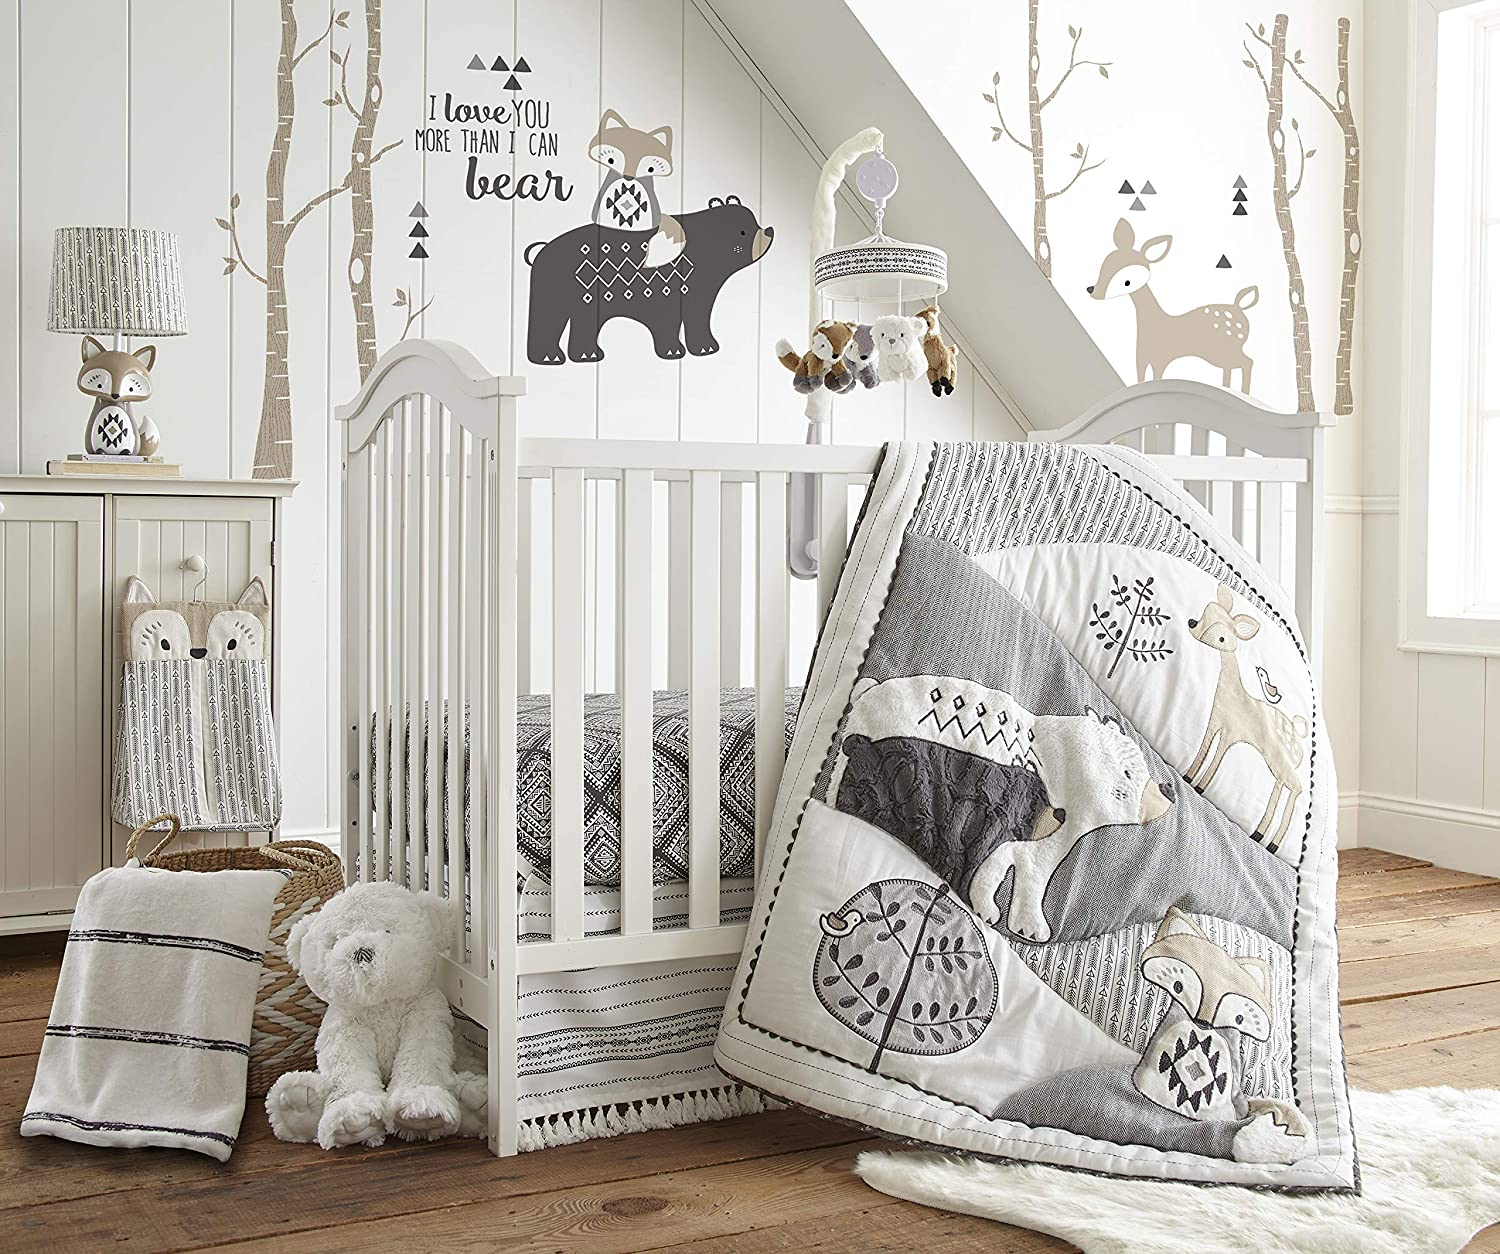 Levtex Baby Bailey Charcoal and White Woodland Themed 5 Piece Crib Bedding Set, Quilt, 100 Cotton Crib Fitted Sheet, Dust Ruffle, Diaper Stacker and Large Wall Decals